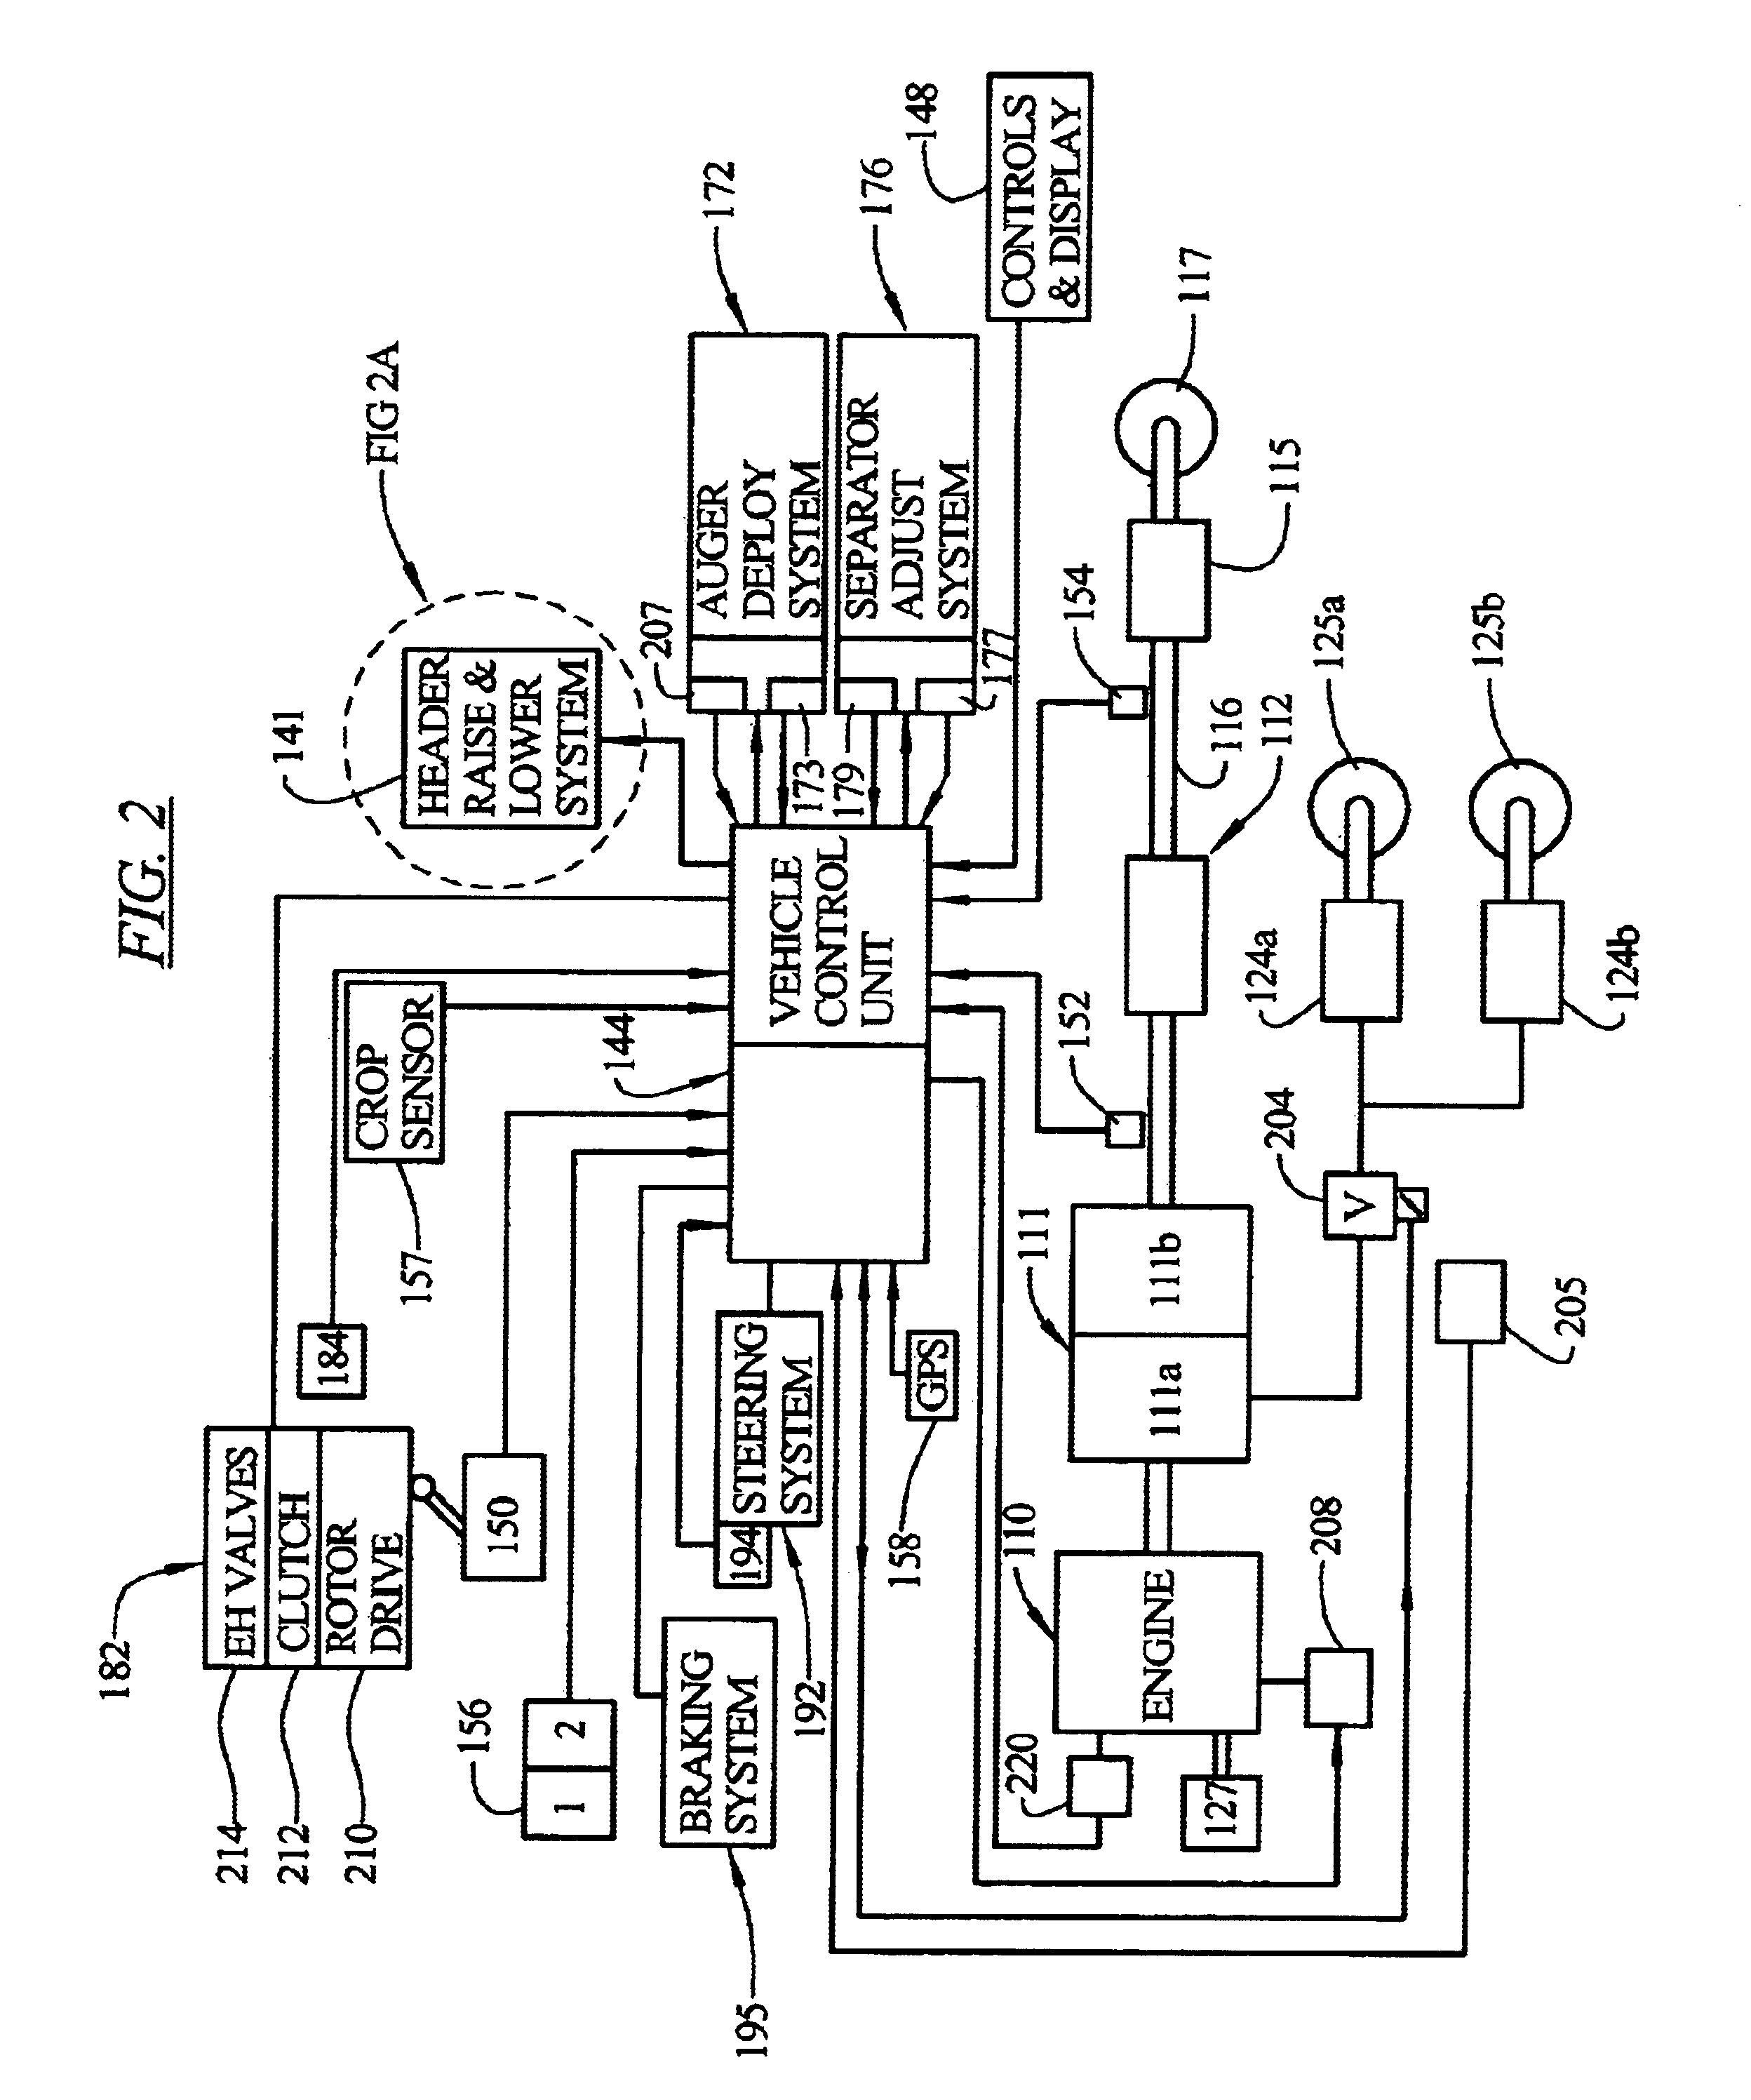 wiring diagram for a jcb